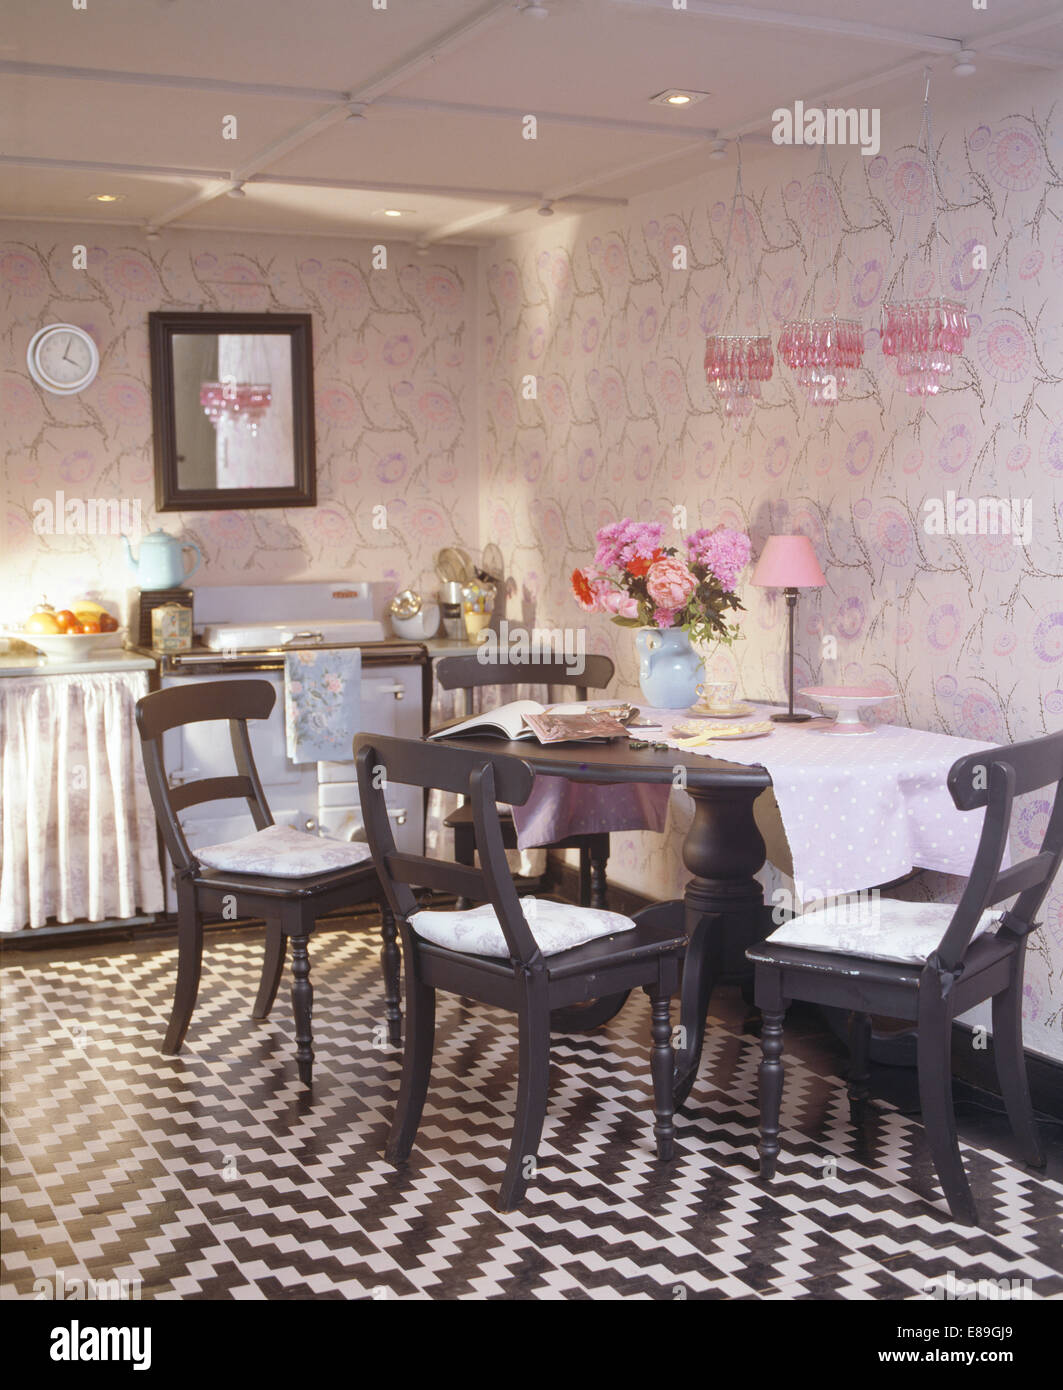 Marvelous Black White Zig Zag Stenciled Floor In Kitchen Dining Room Short Links Chair Design For Home Short Linksinfo